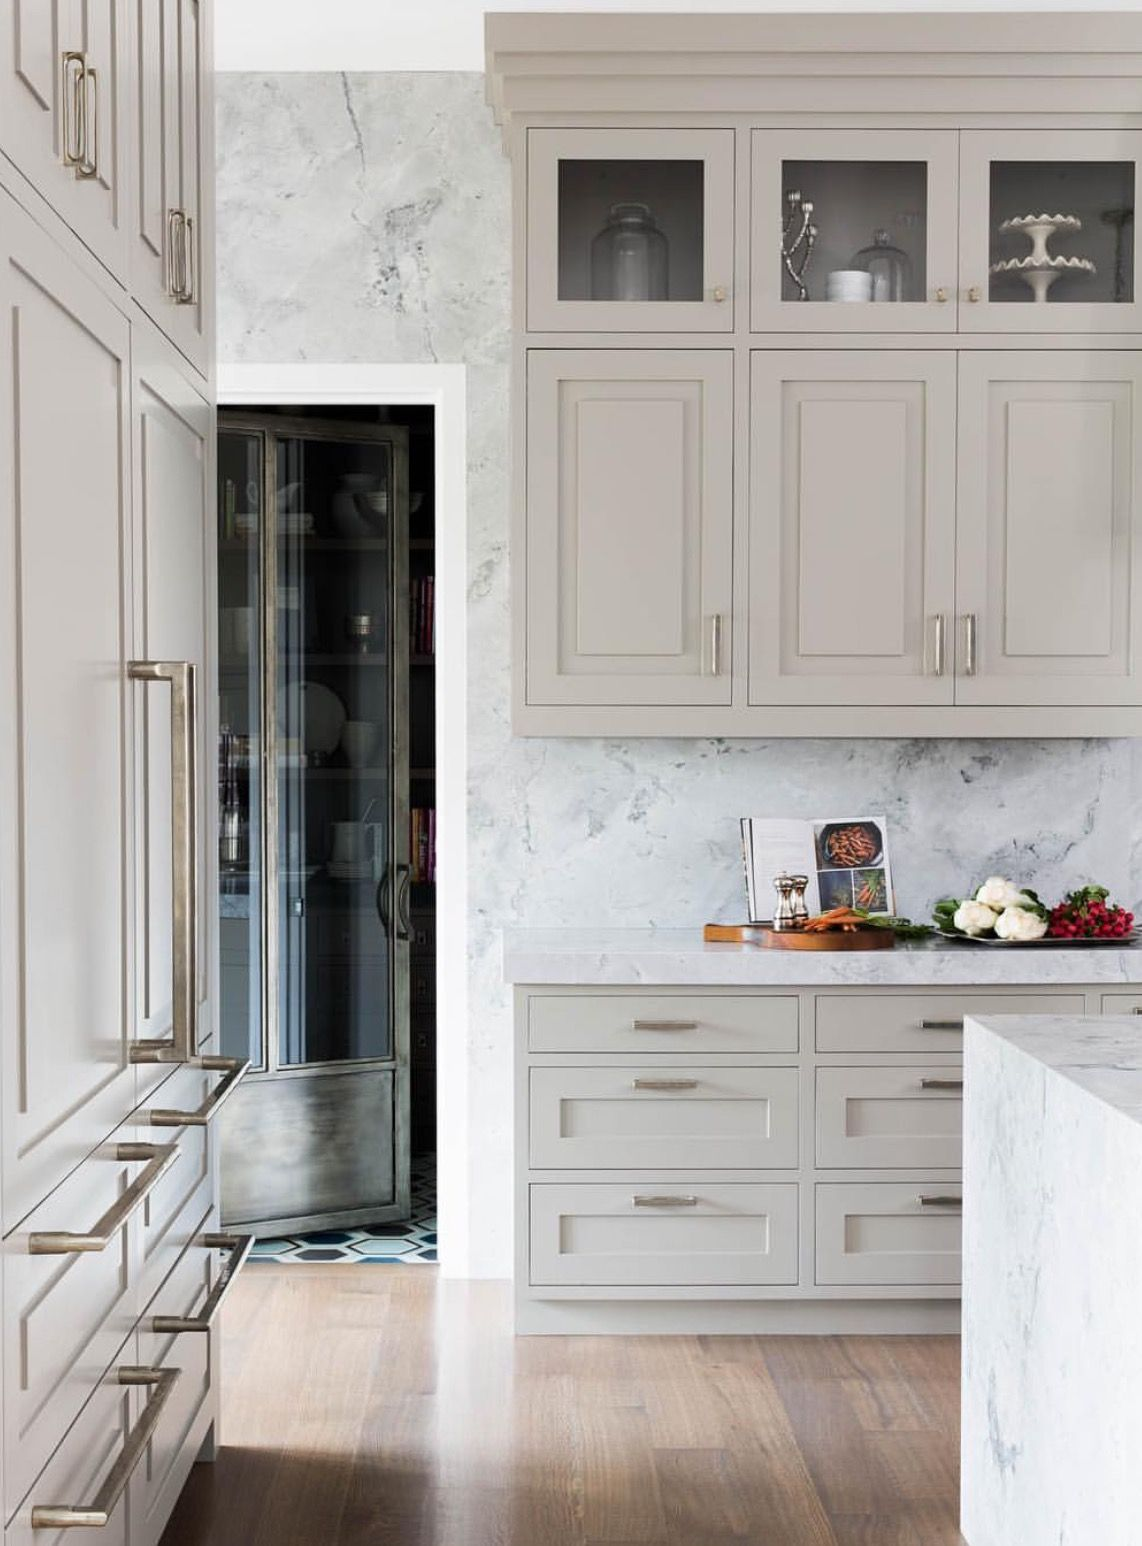 A glass and metal pantry door is